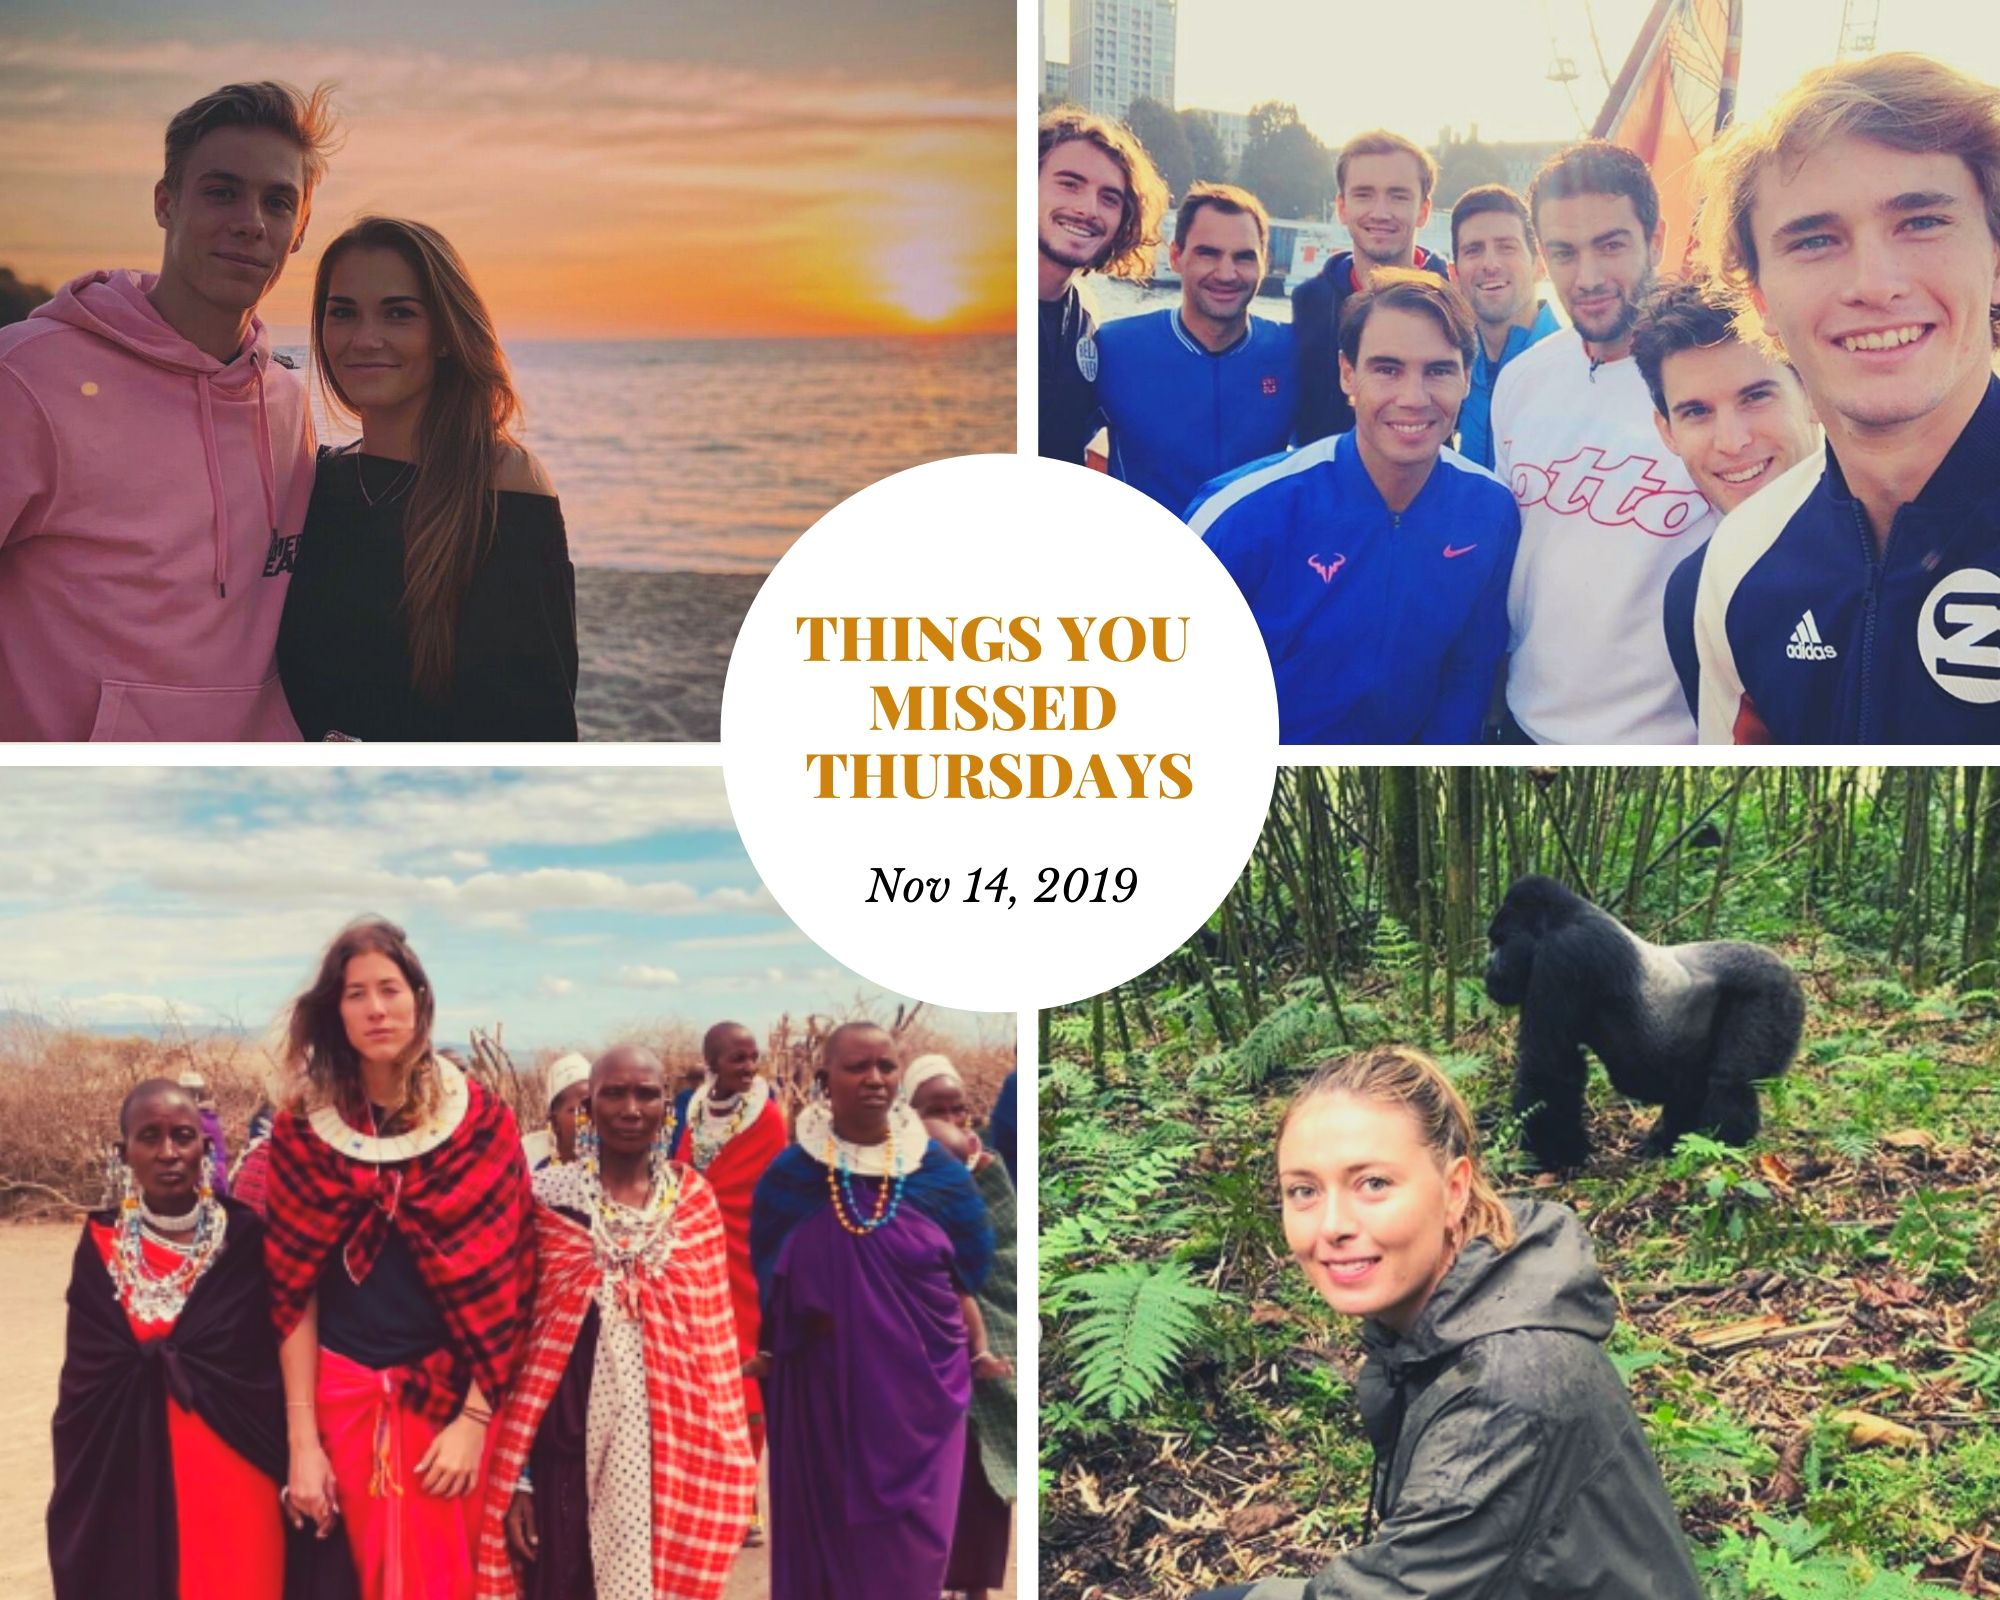 Things You Missed Thursdays – Nov 14